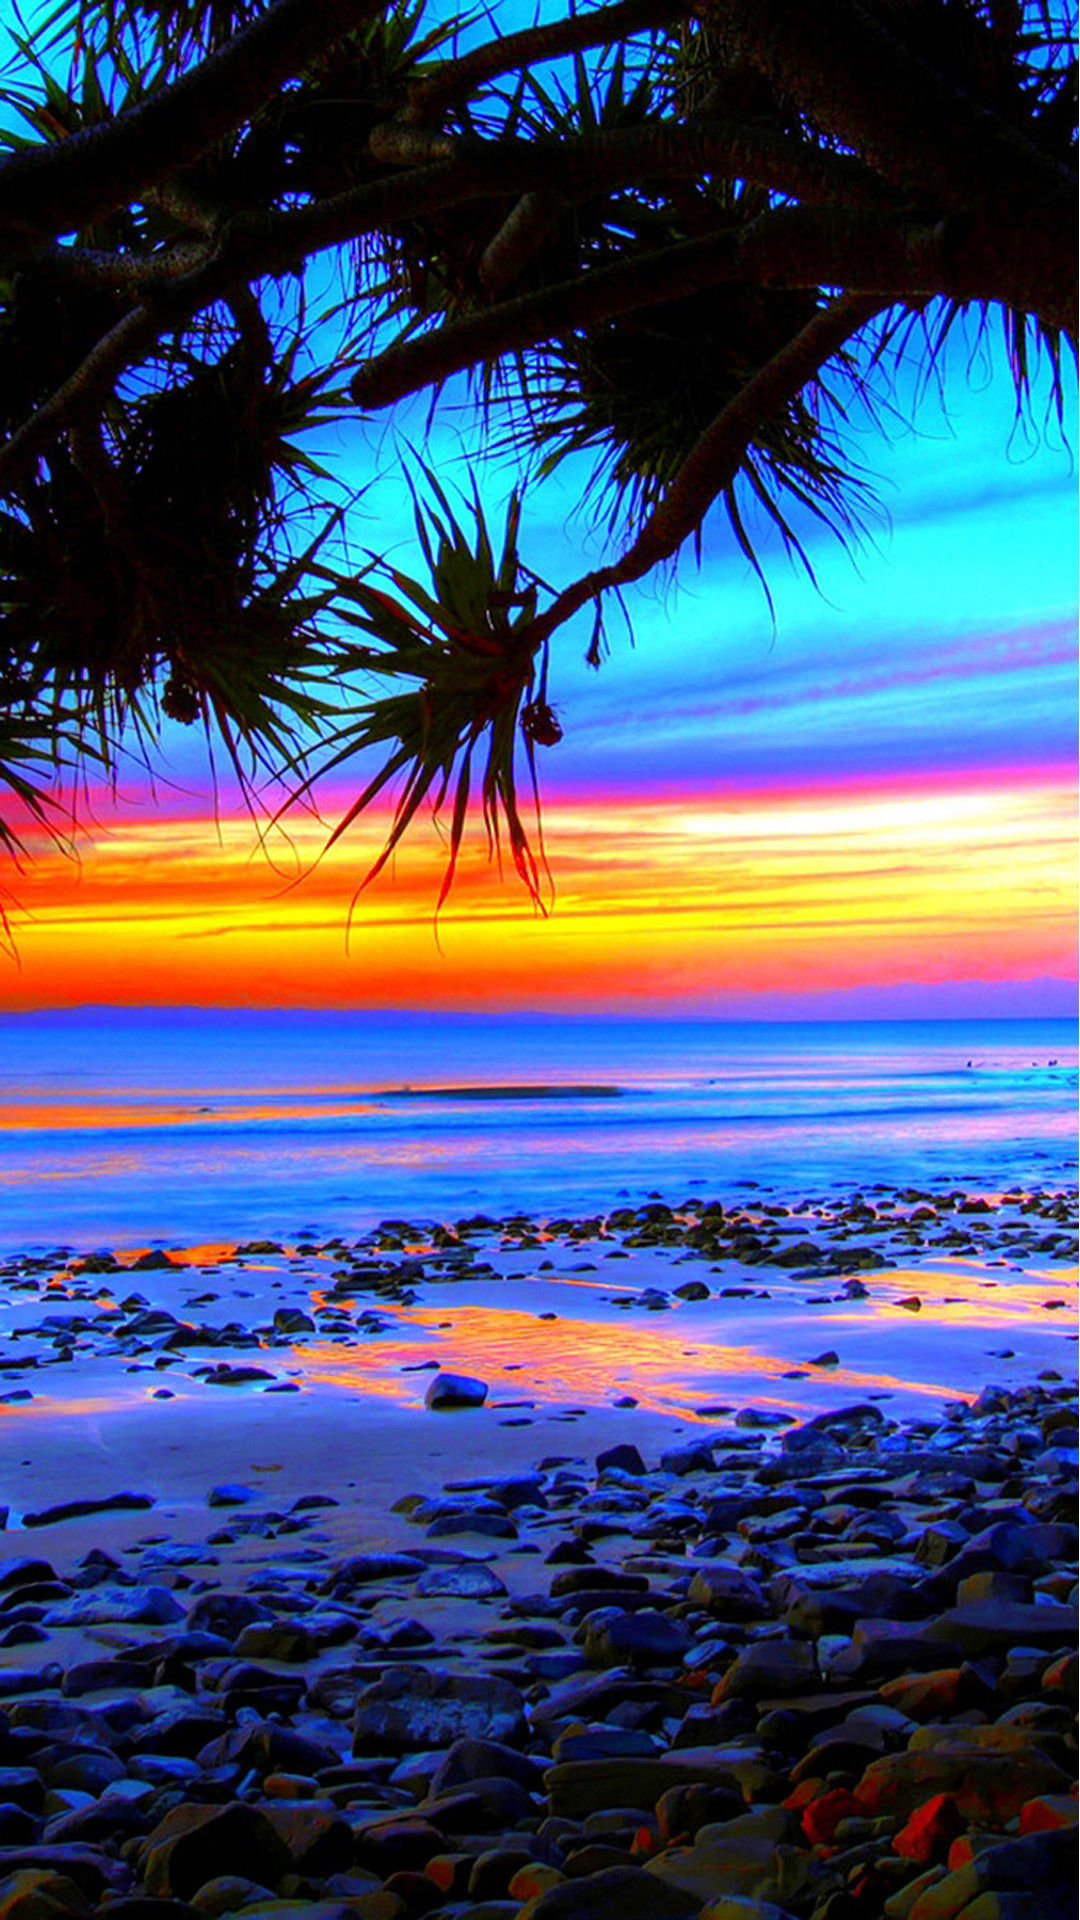 50 AMAZING BEACH WALLPAPERS FREE TO DOWNLOAD